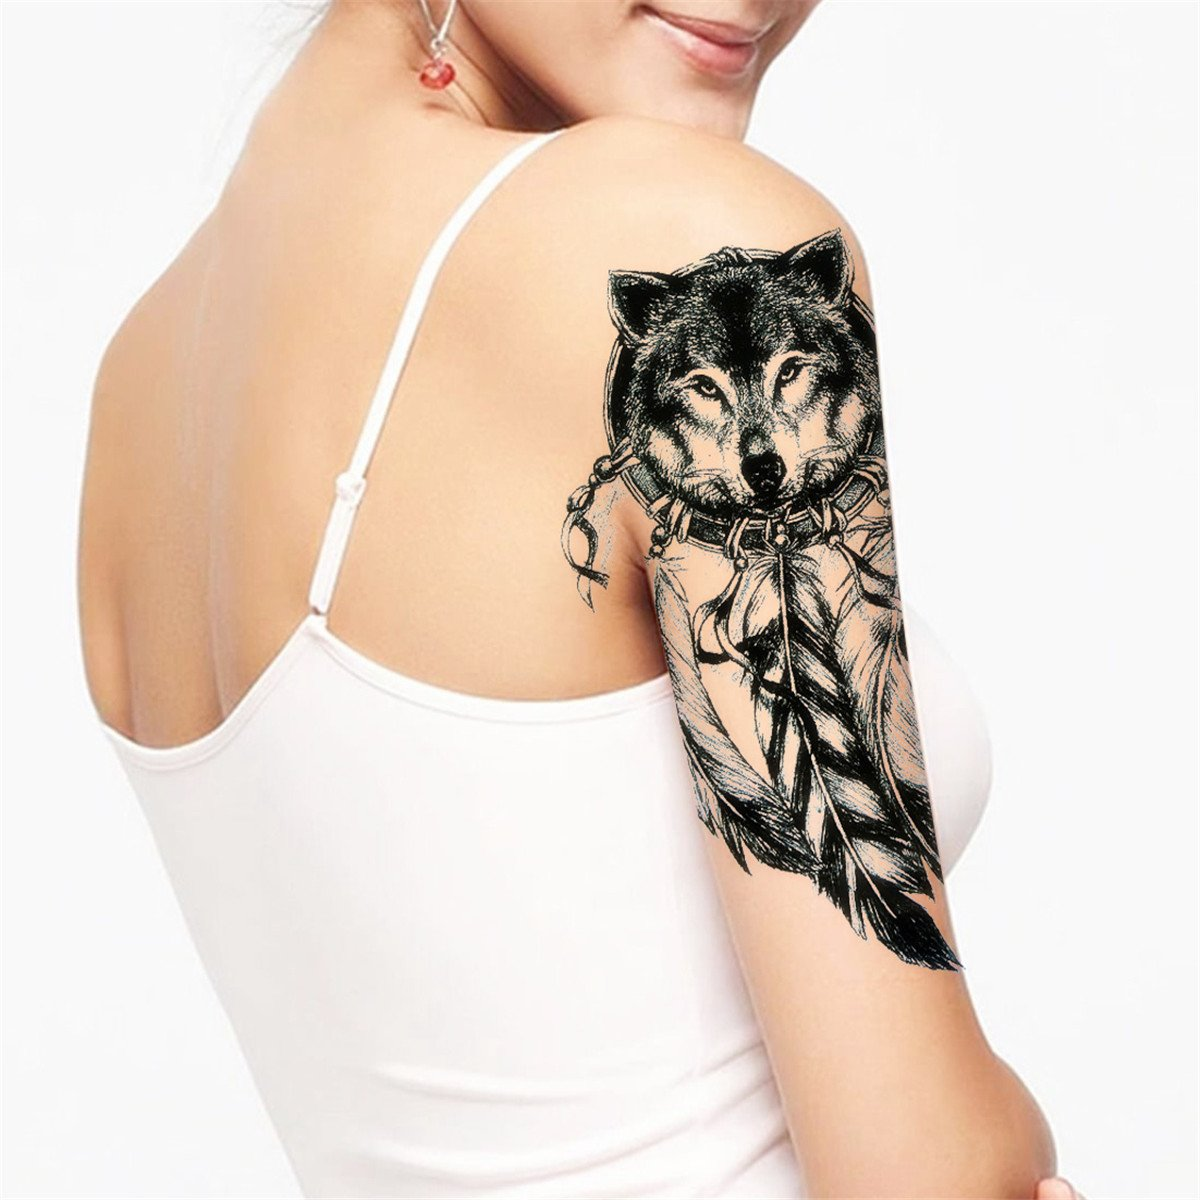 Amazon.com : COKOHAPPY 5 Sheets Temporary Tattoo Black Wolf Dream Catcher for Women Men : Beauty